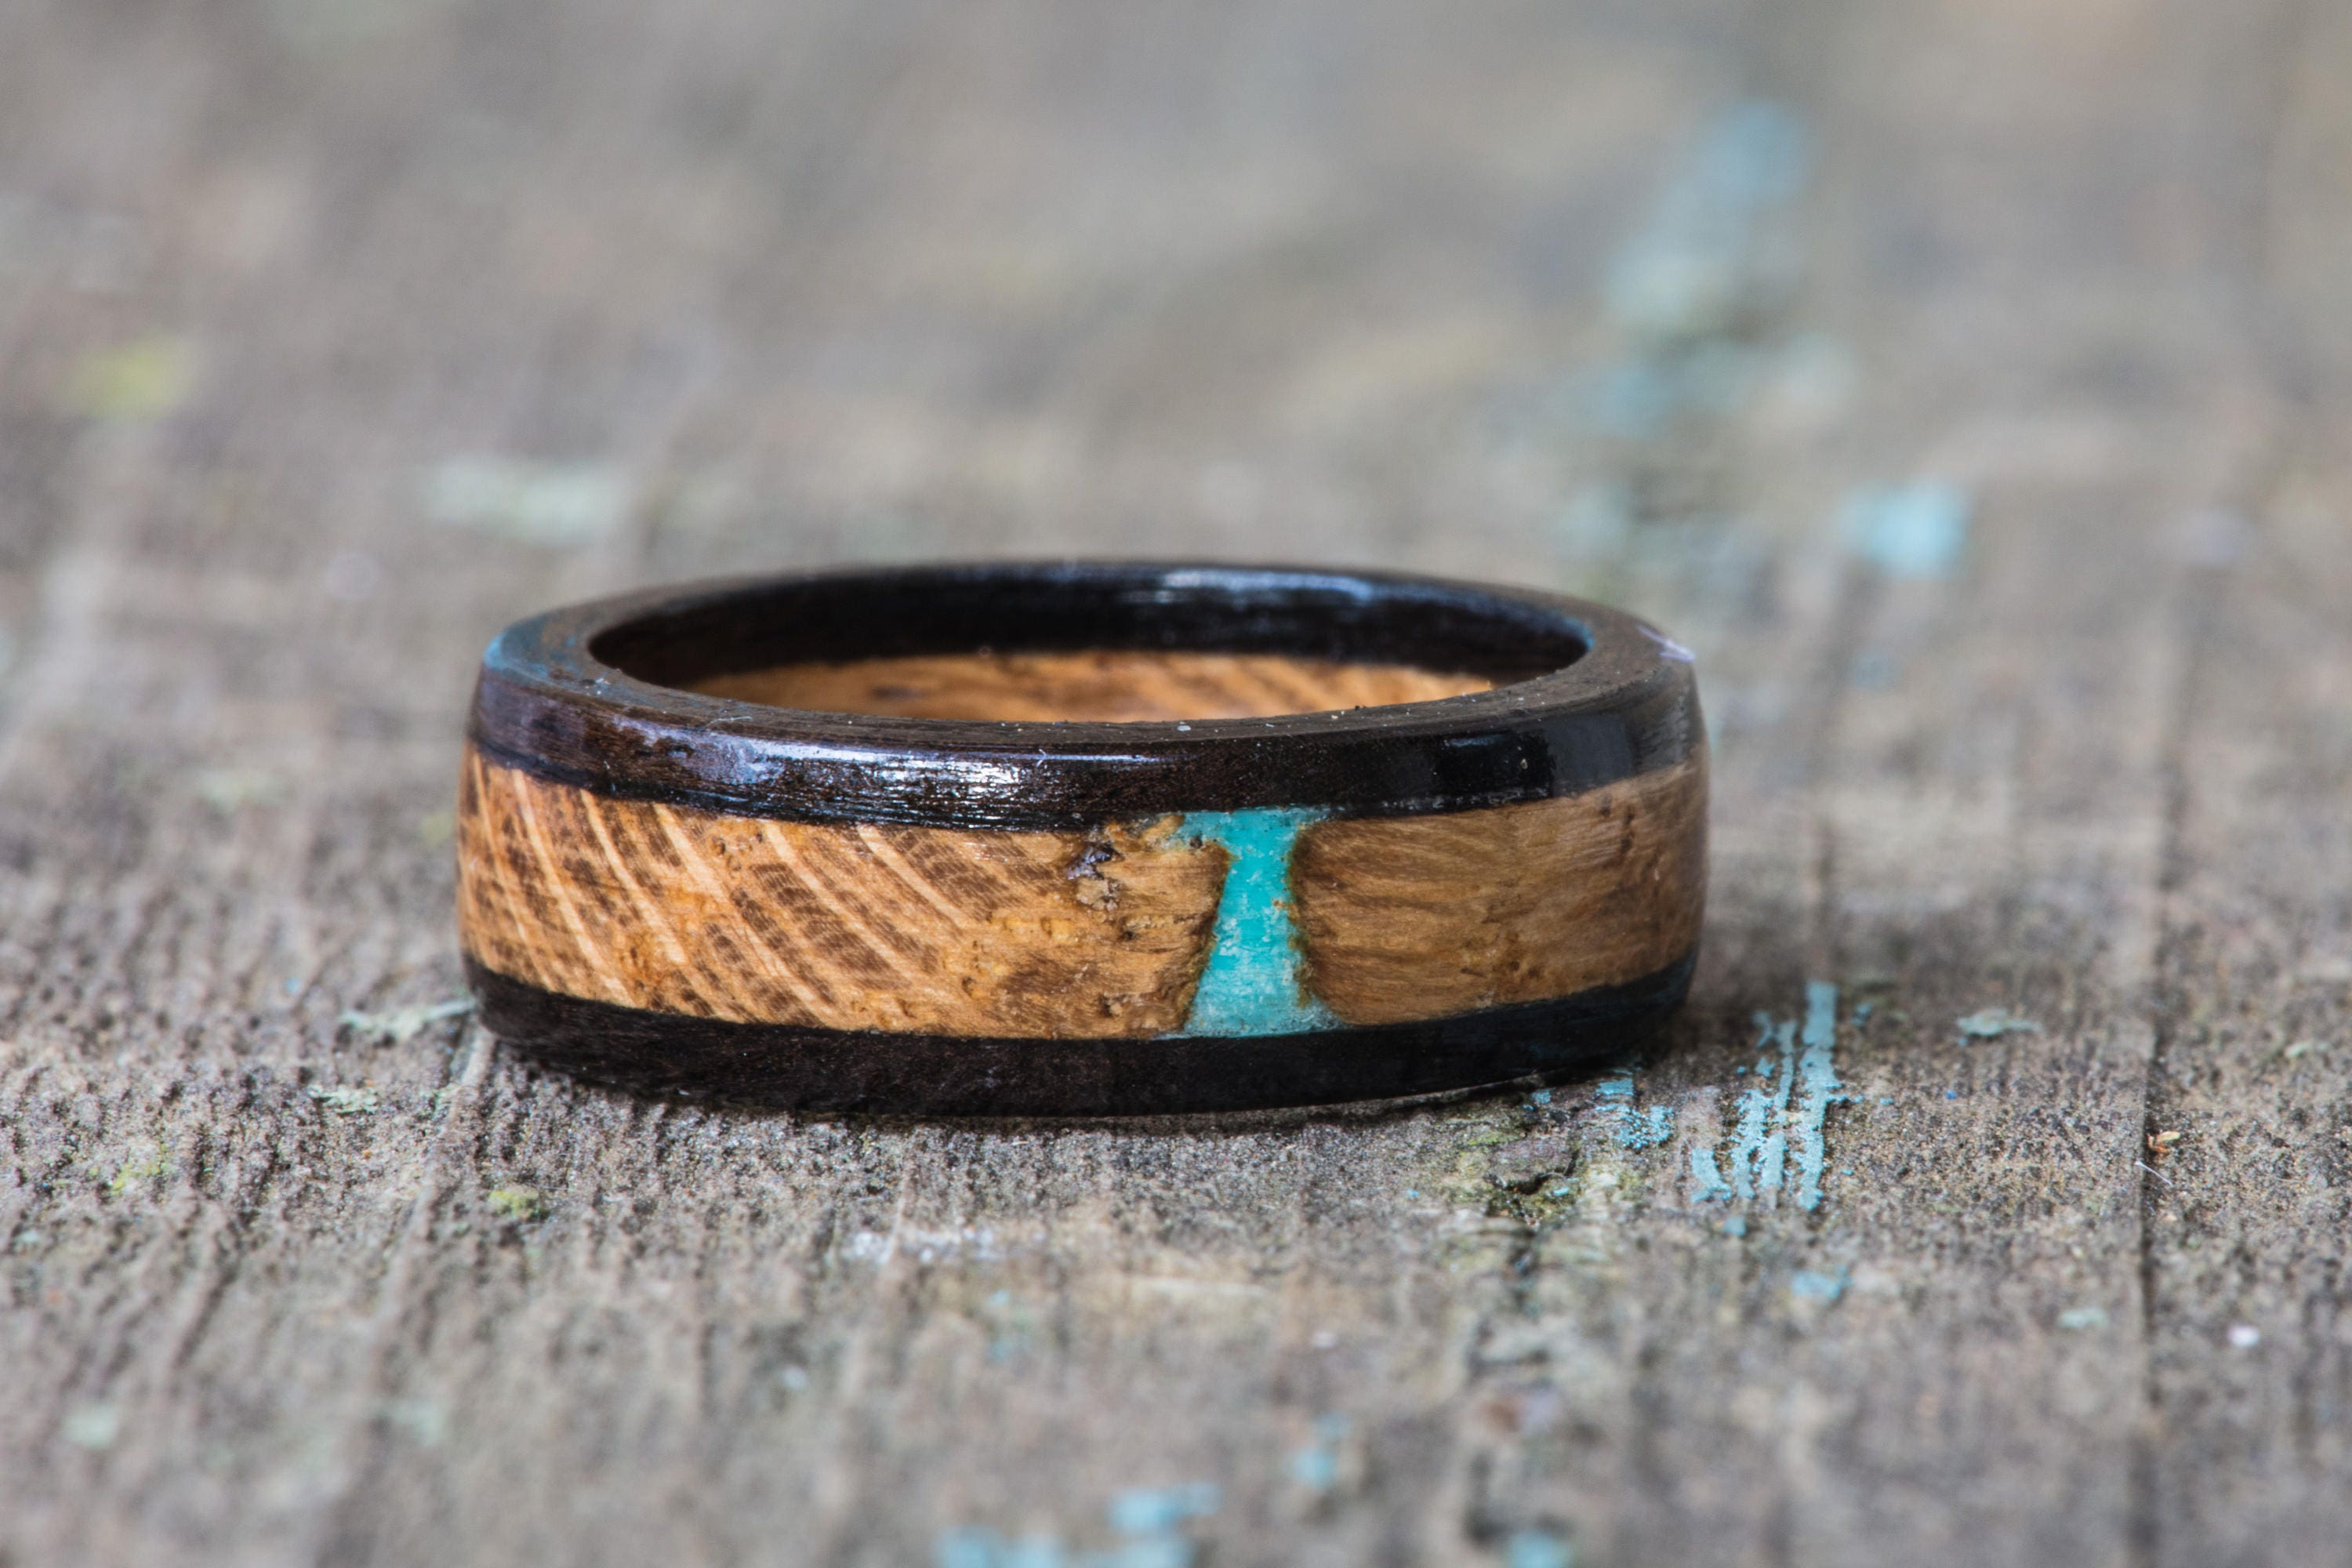 Whiskey Barrel And Ebony Wood Ring With Turquoise Inlay